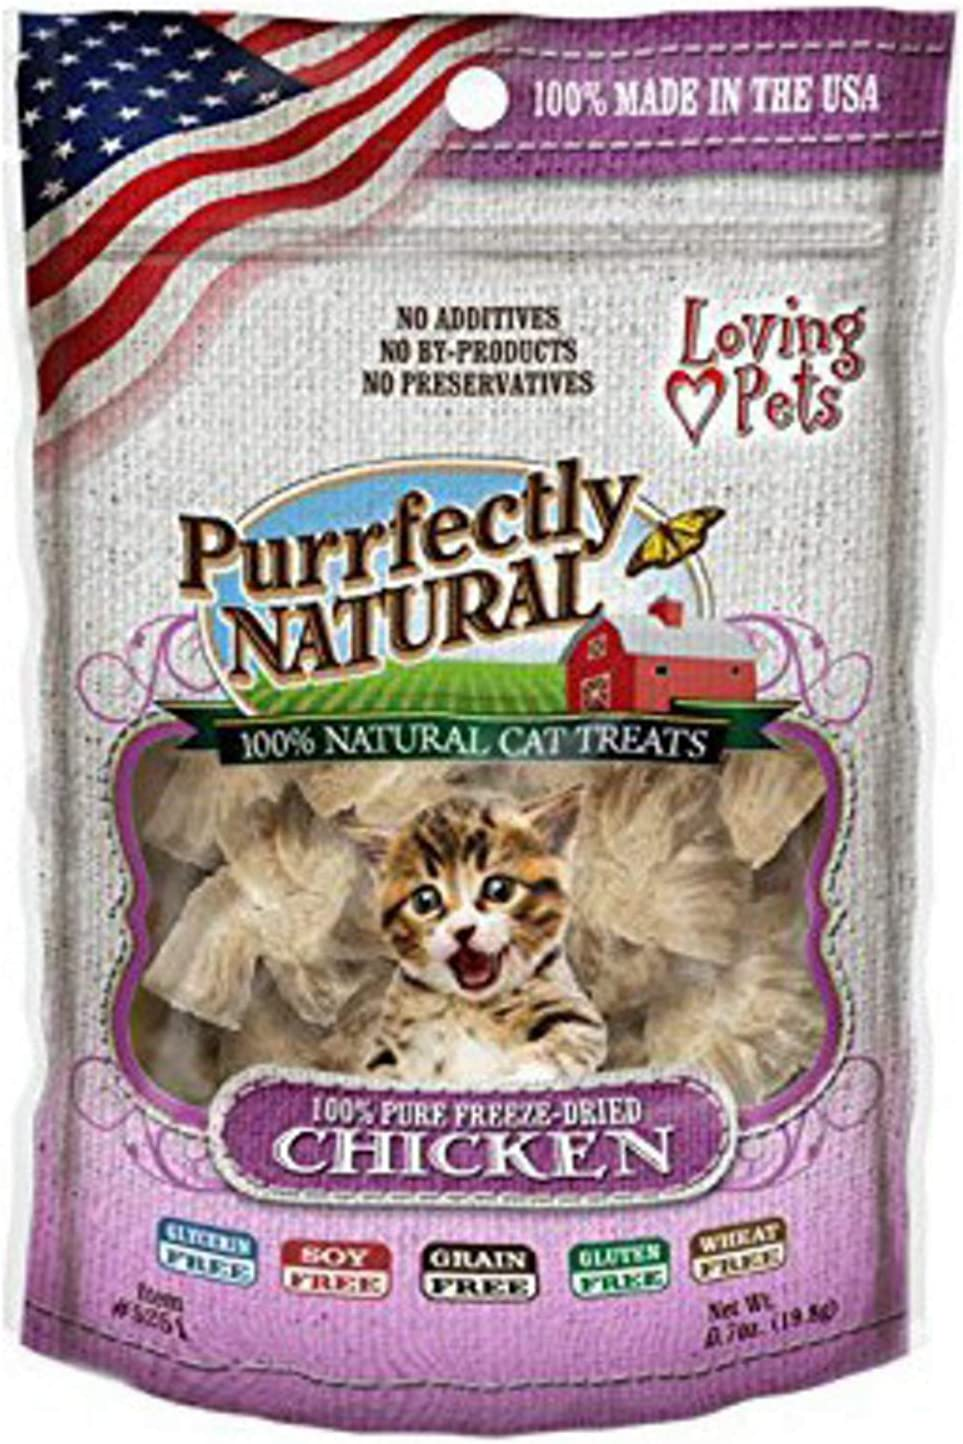 Loving Pets Freeze Dried Chicken Cat Treats, Purrfectly Natural, 6 Ounce, 12 Pack